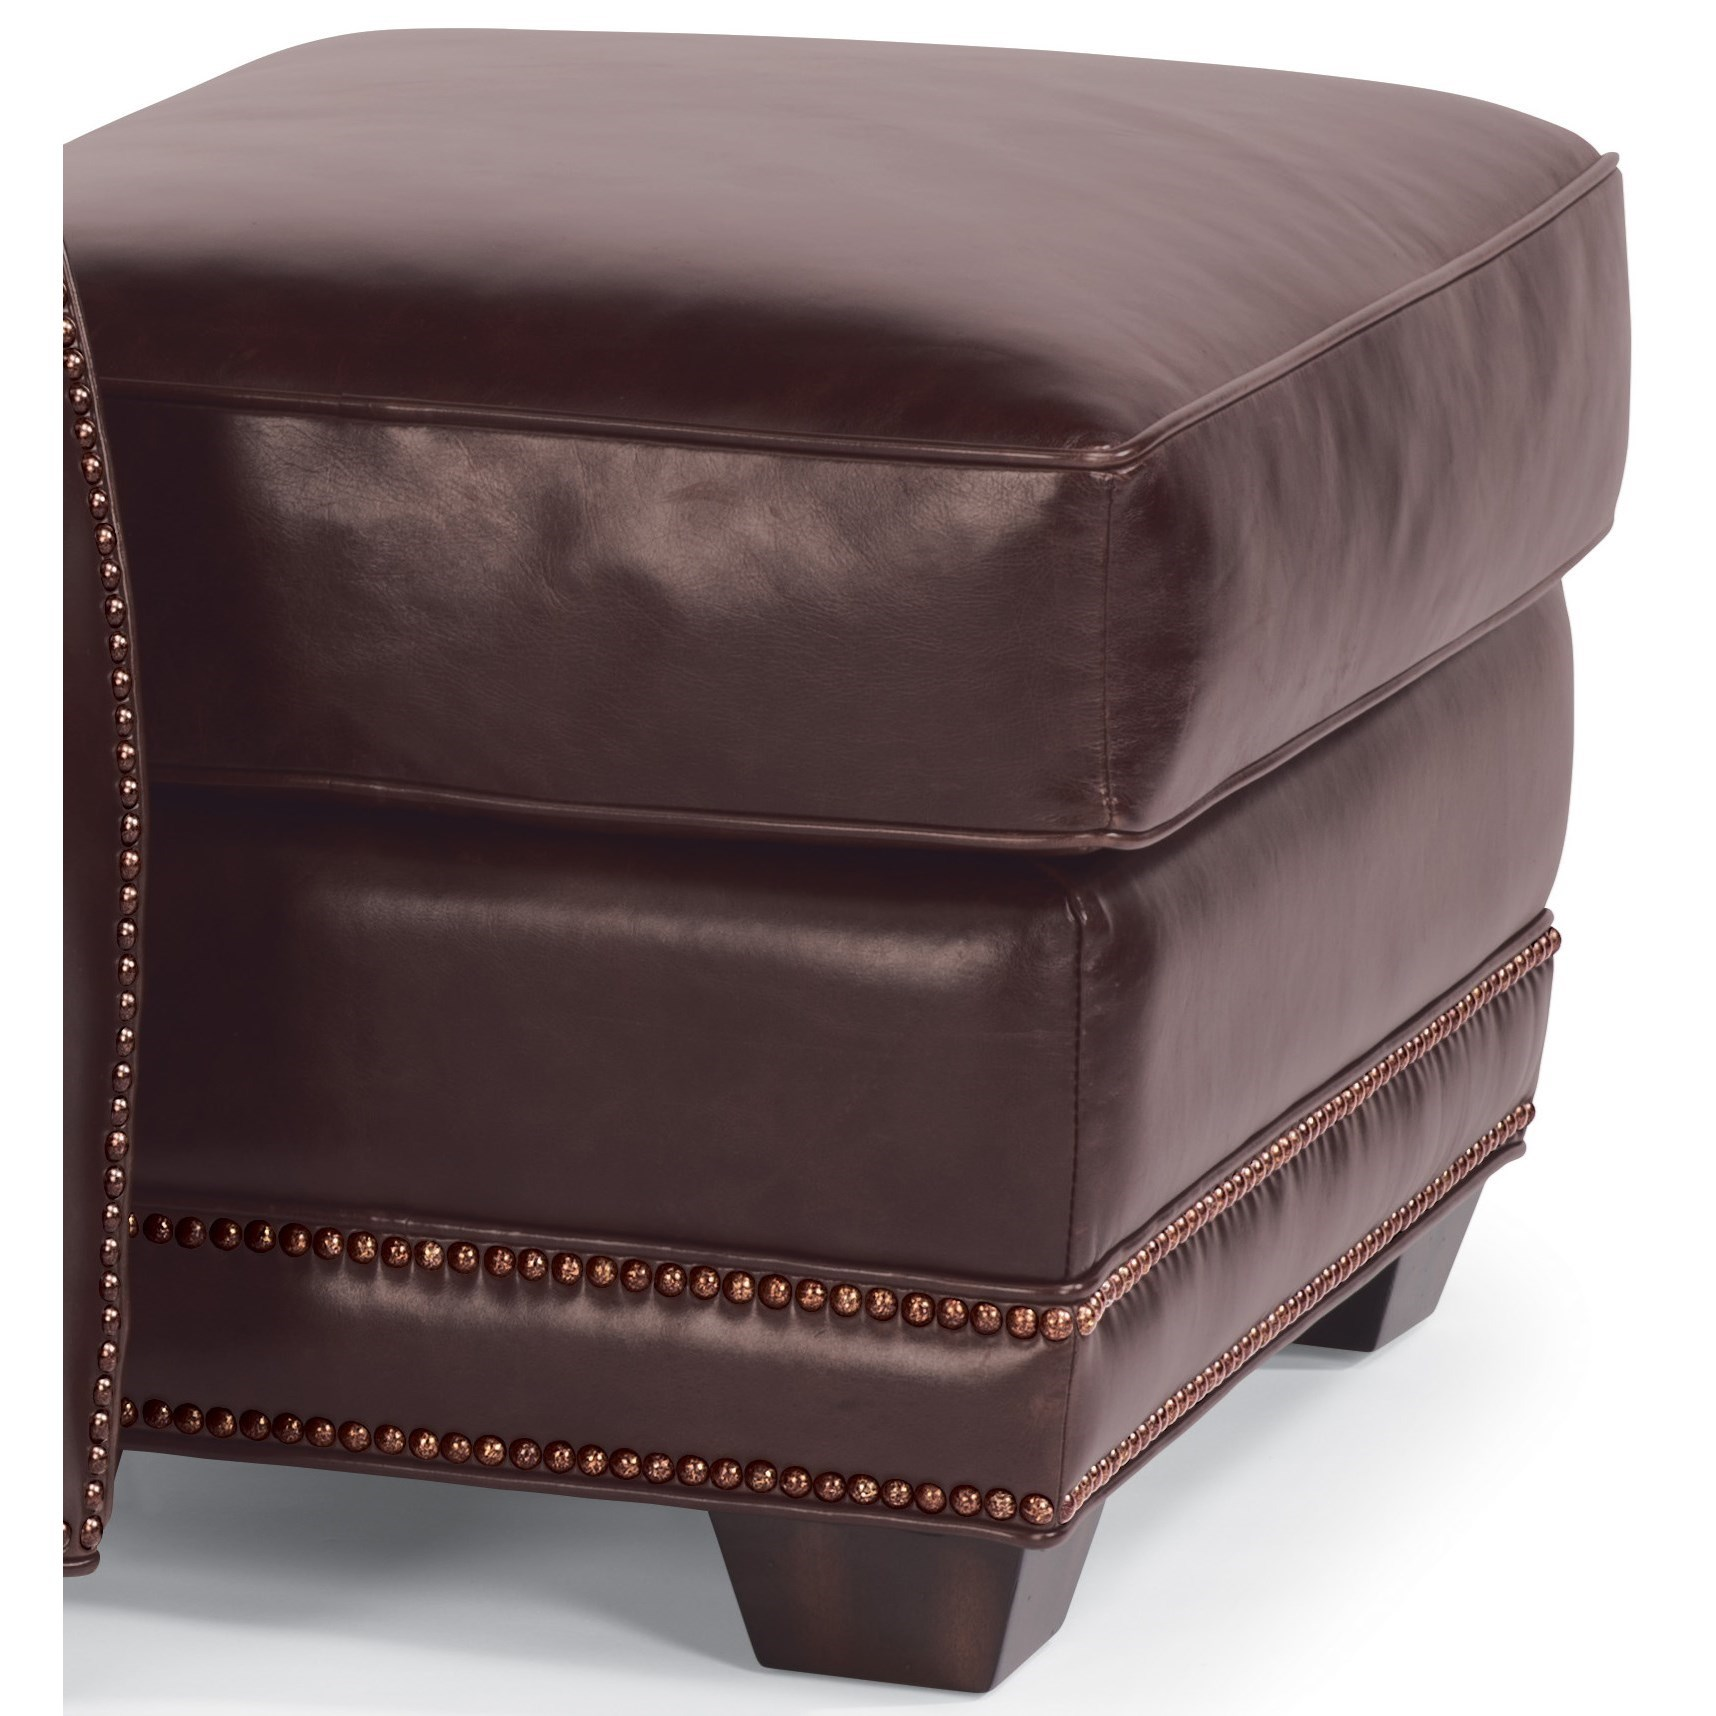 Flexsteel Latitudes-Raleigh Leather Ottoman  - Item Number: 1260-08